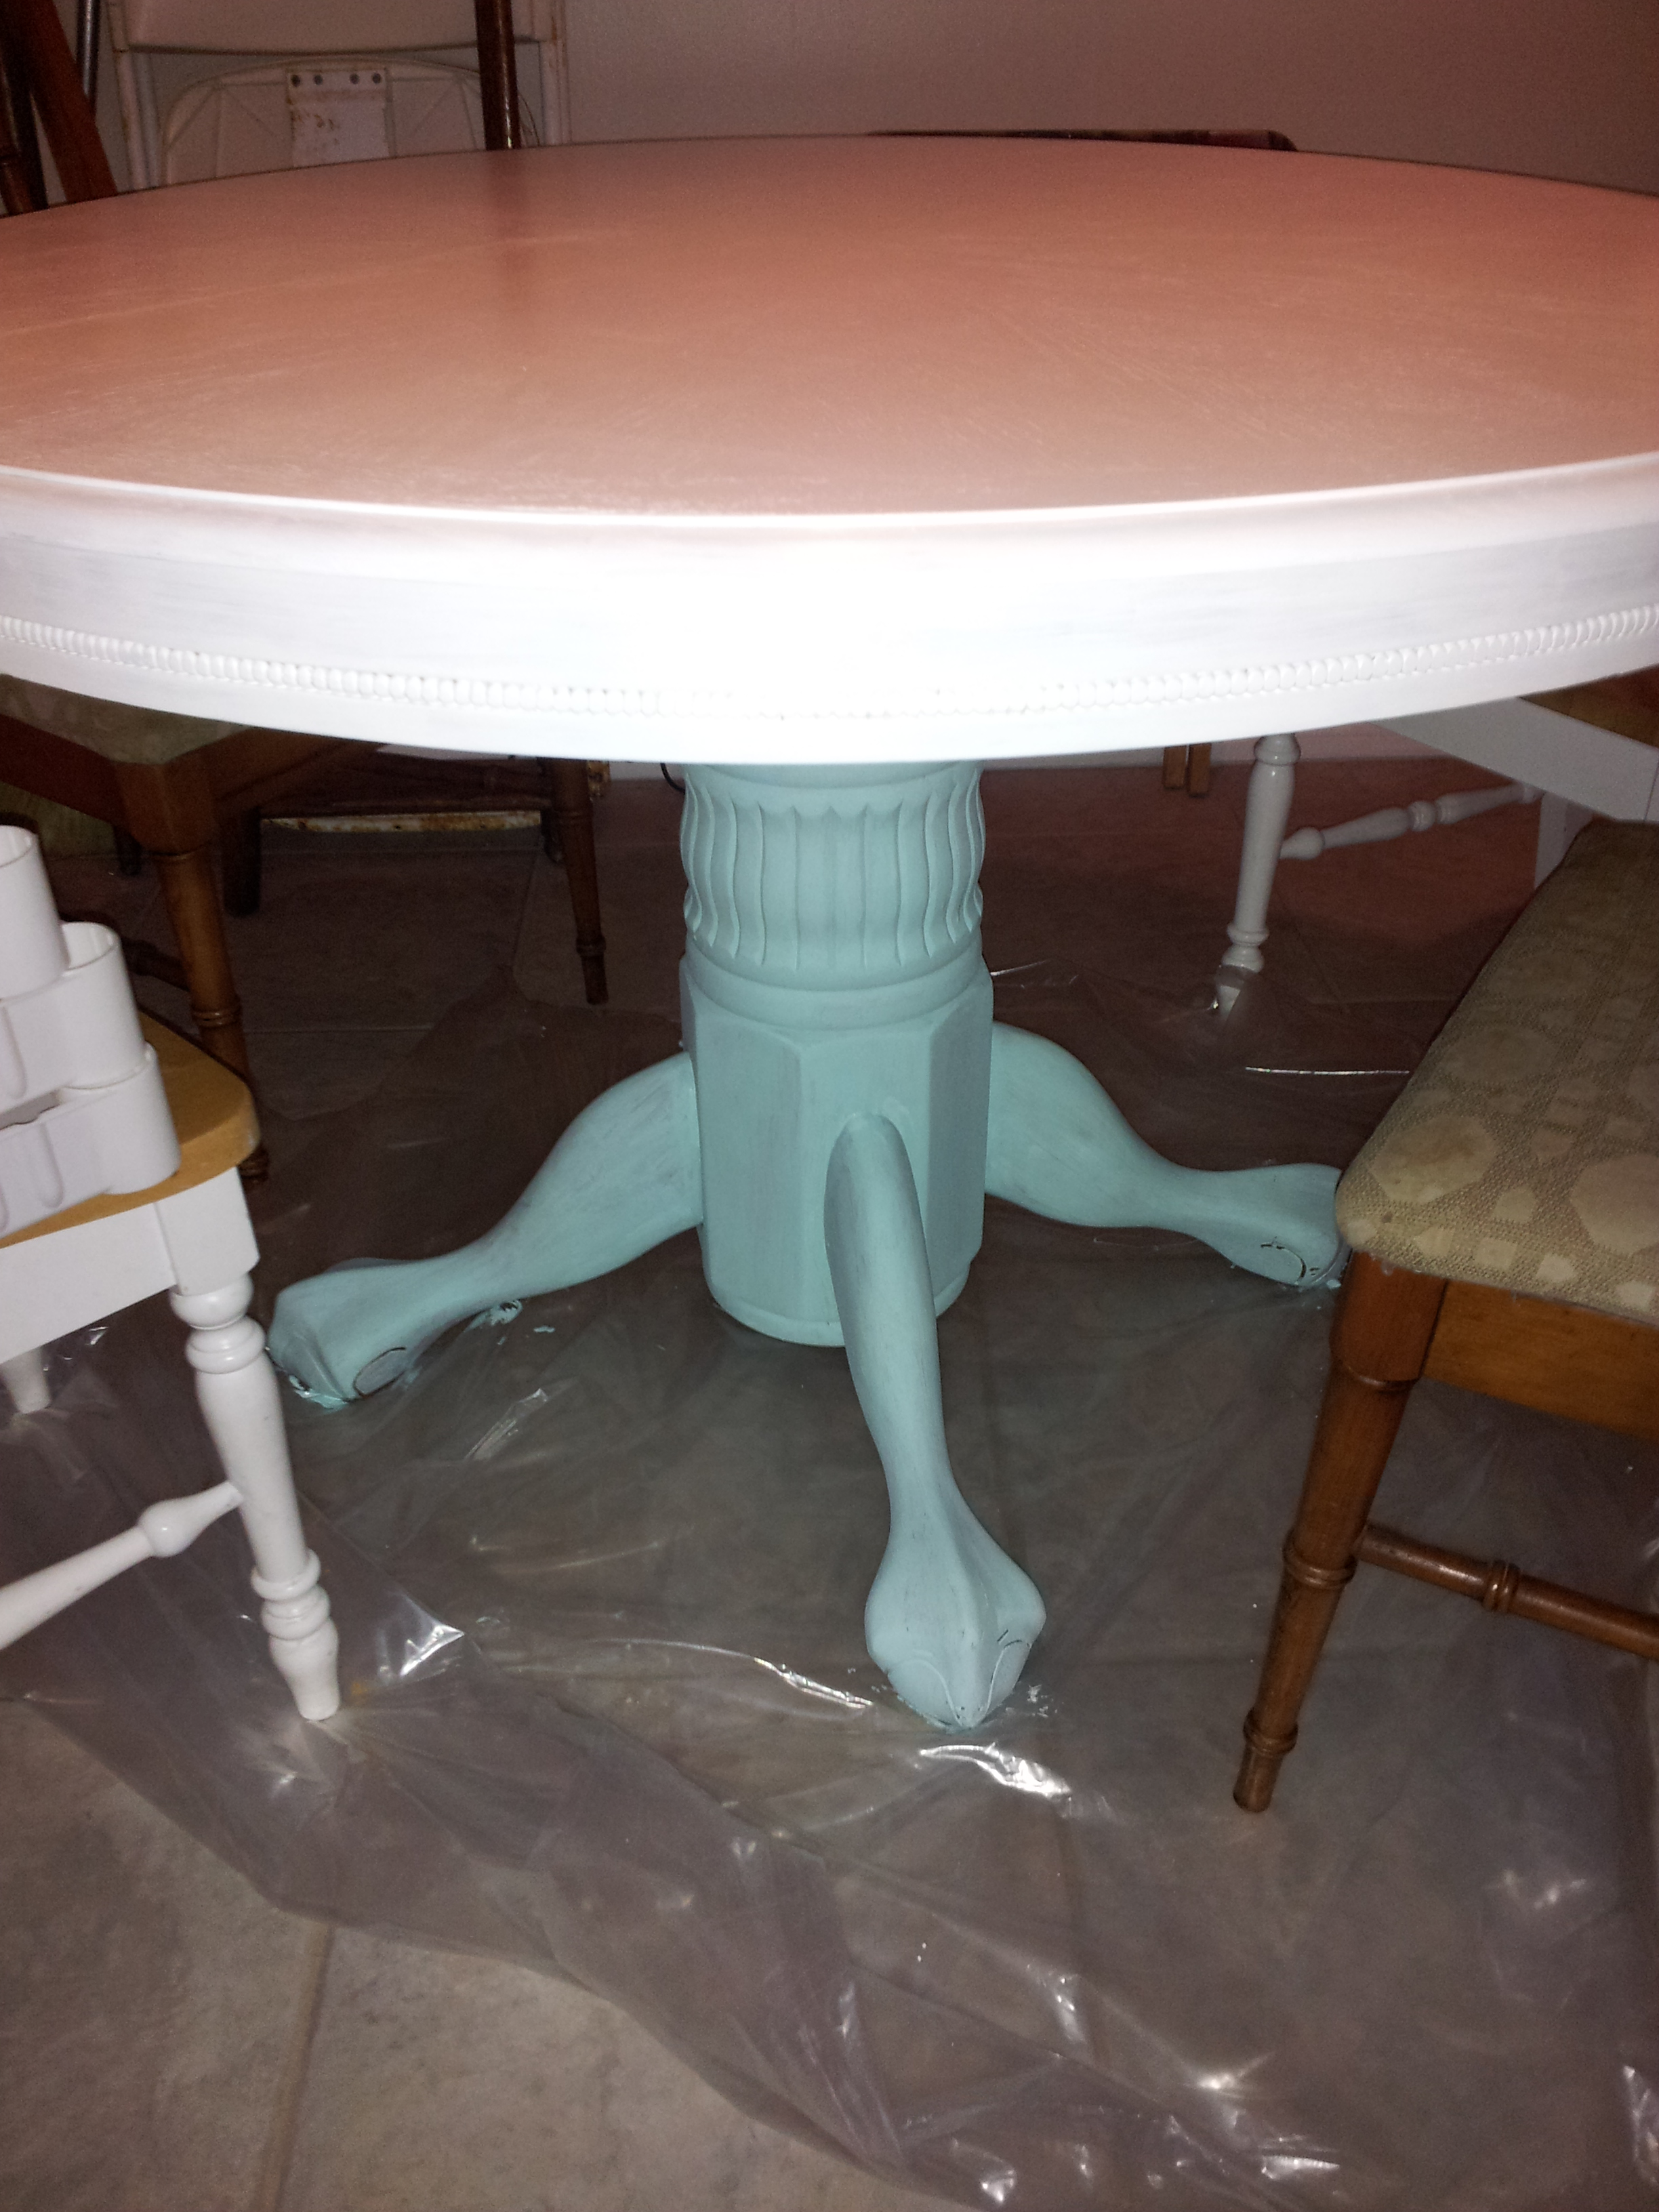 Painted Thrift Store Table Redo - Find out more at frommarriedtomerry.wordpress.com